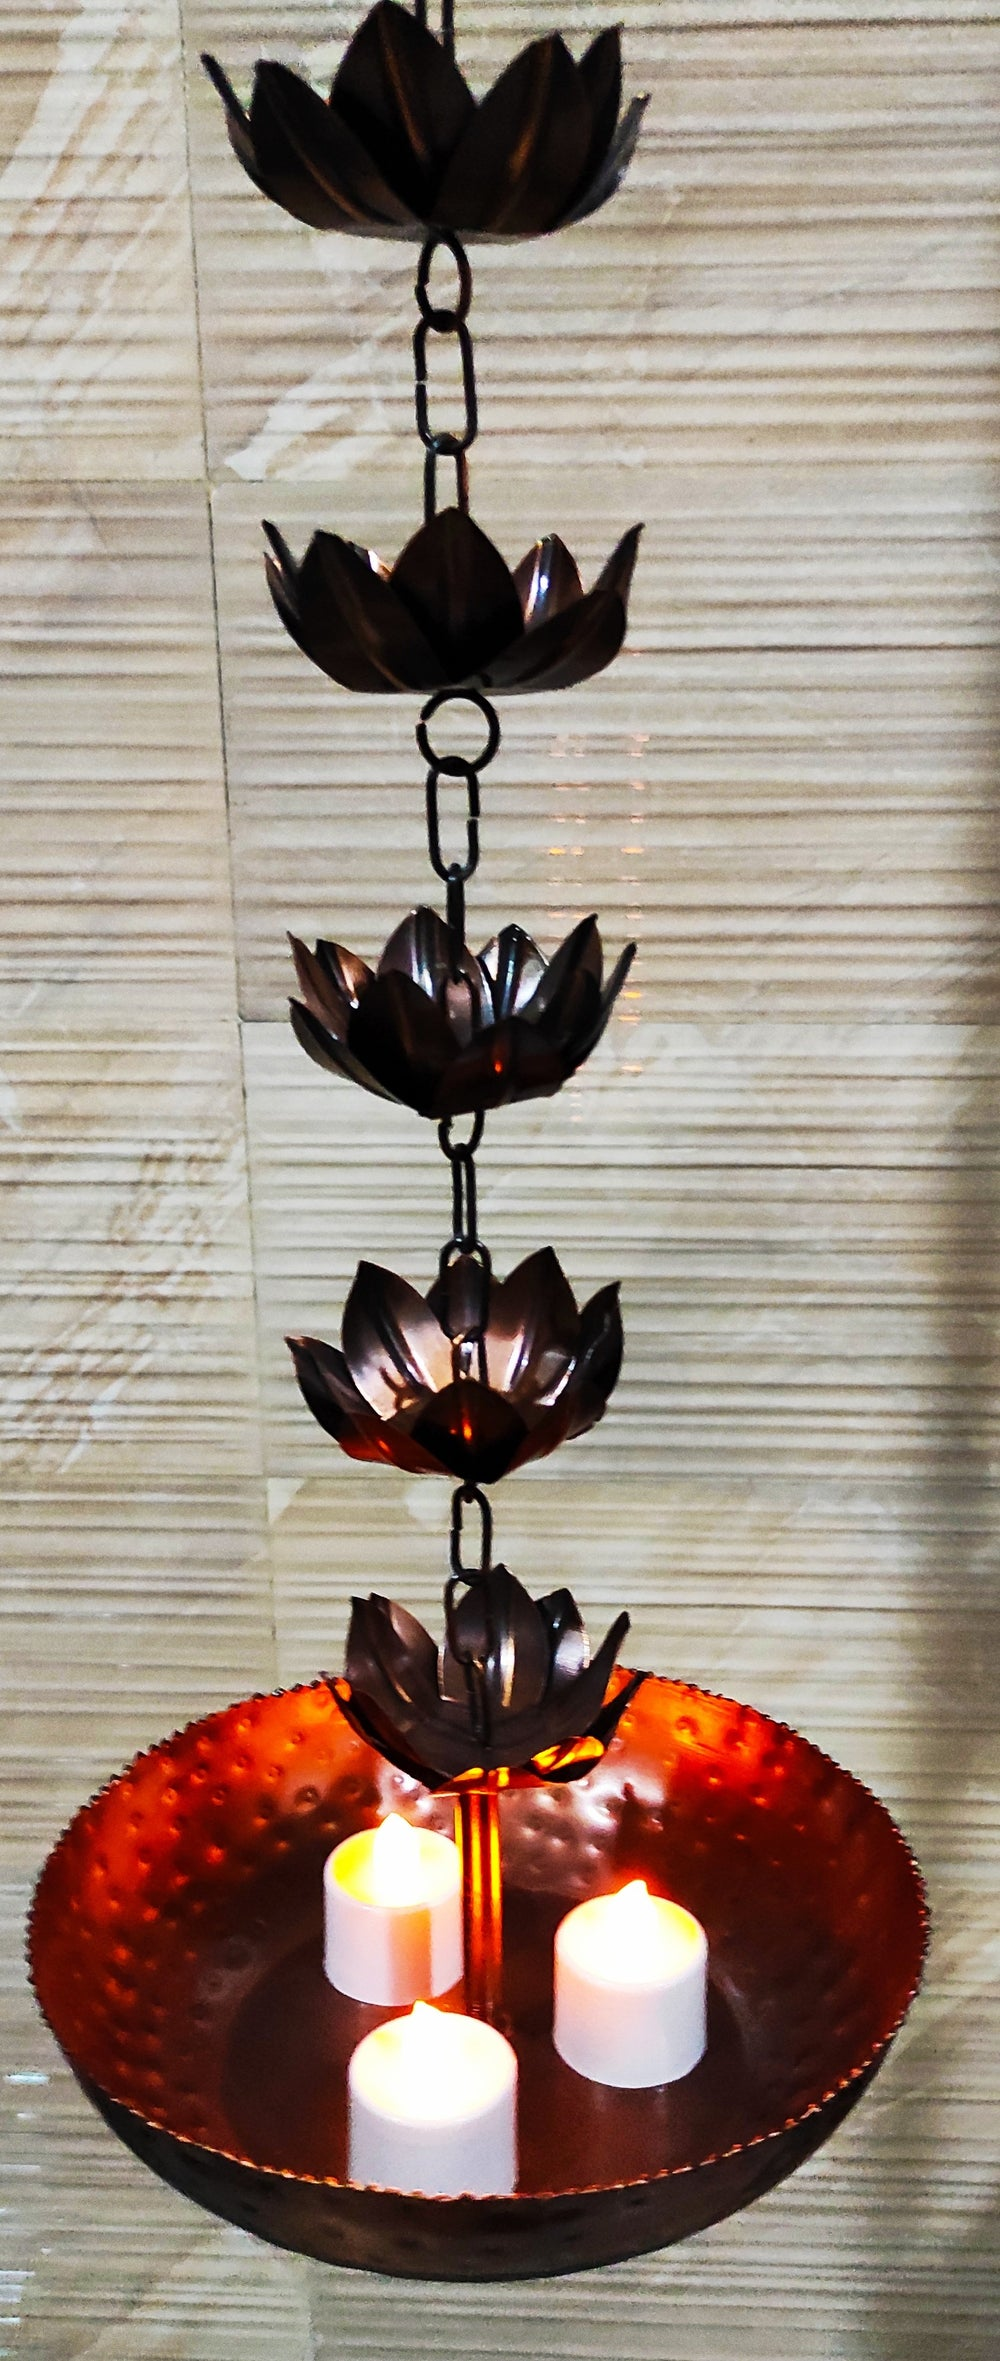 Copper Hanging Diya Light Round Bowl with Glass Candles, Decorative Purpose, Diwali, Marriage Gift